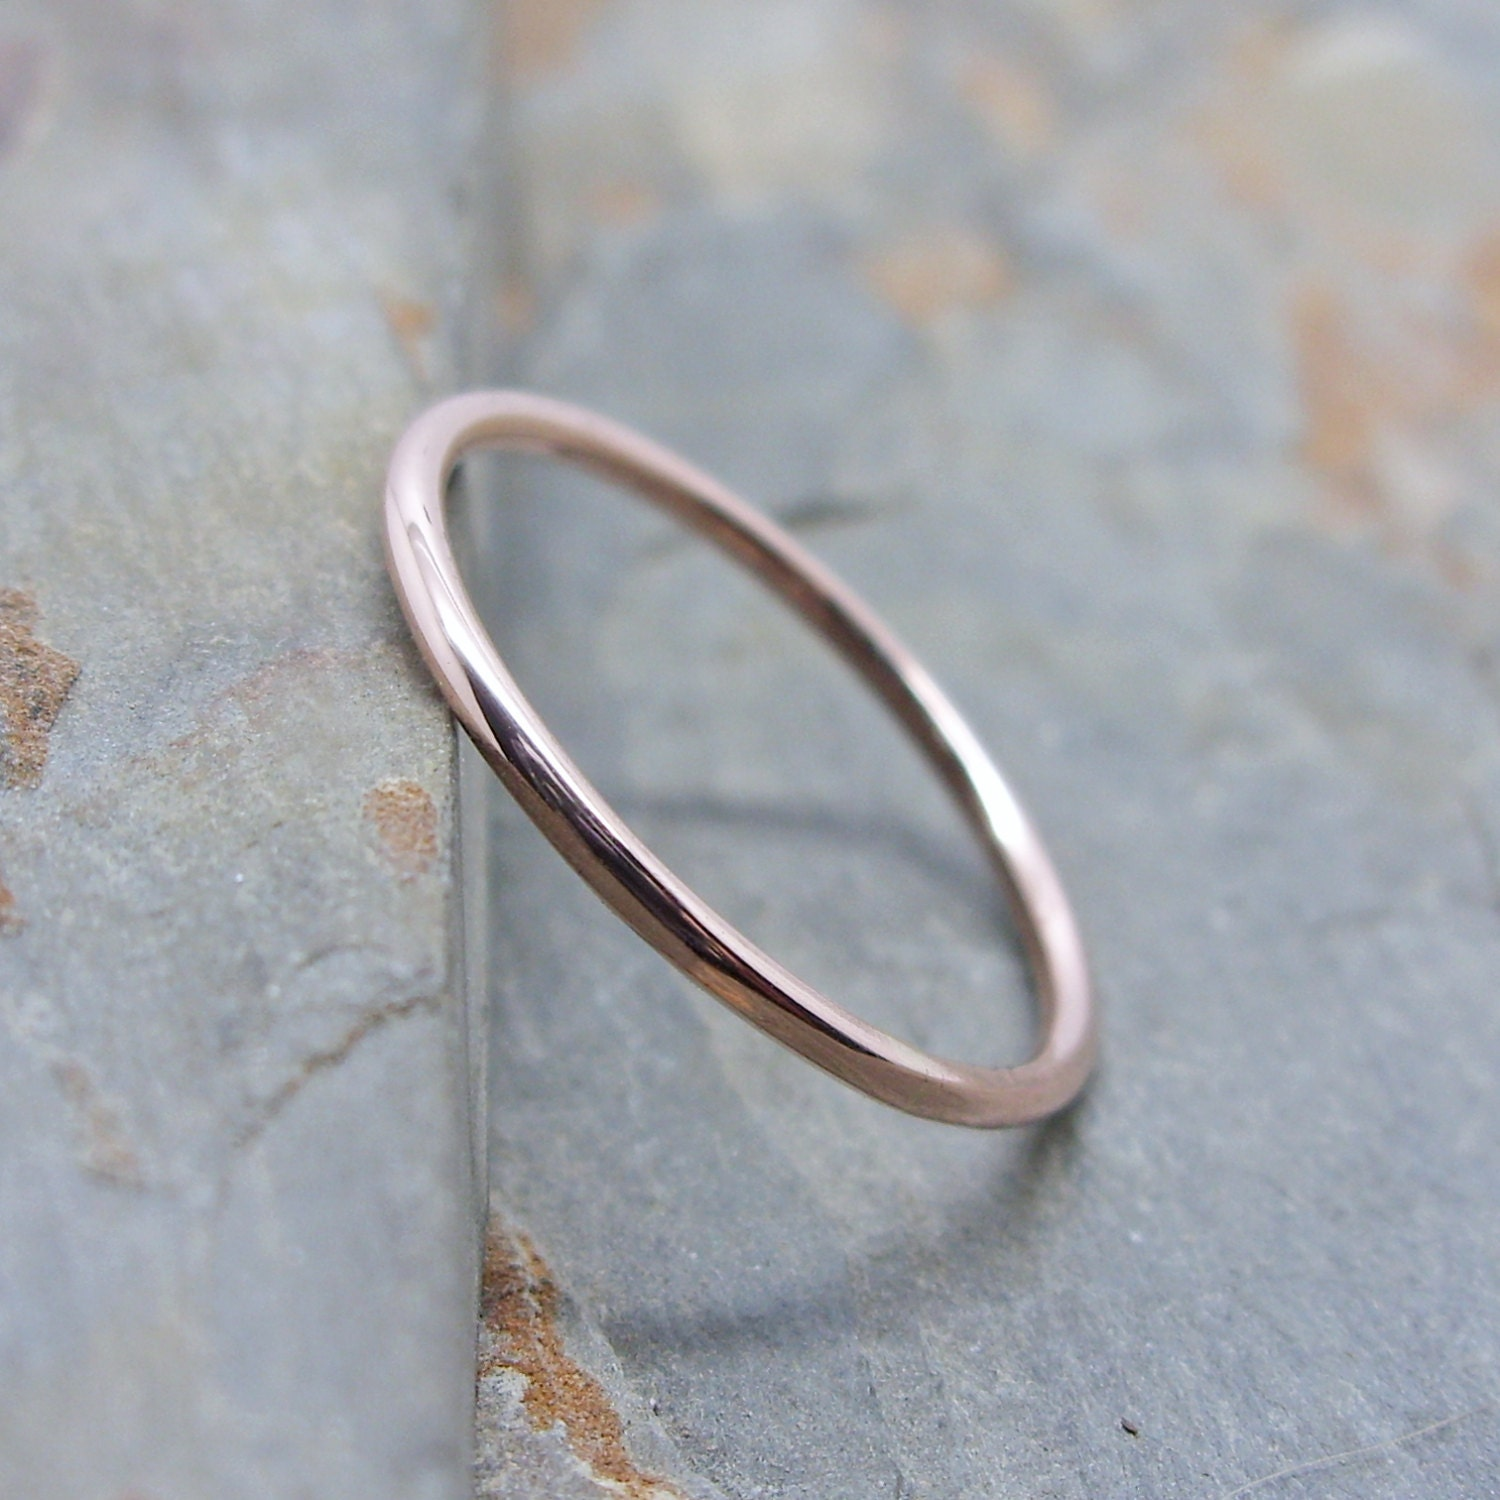 made shiny rings exclusively pin simplicity a simple smooth for bold silver volumes ring sizes whole speaks to band sterling bands in sundance and